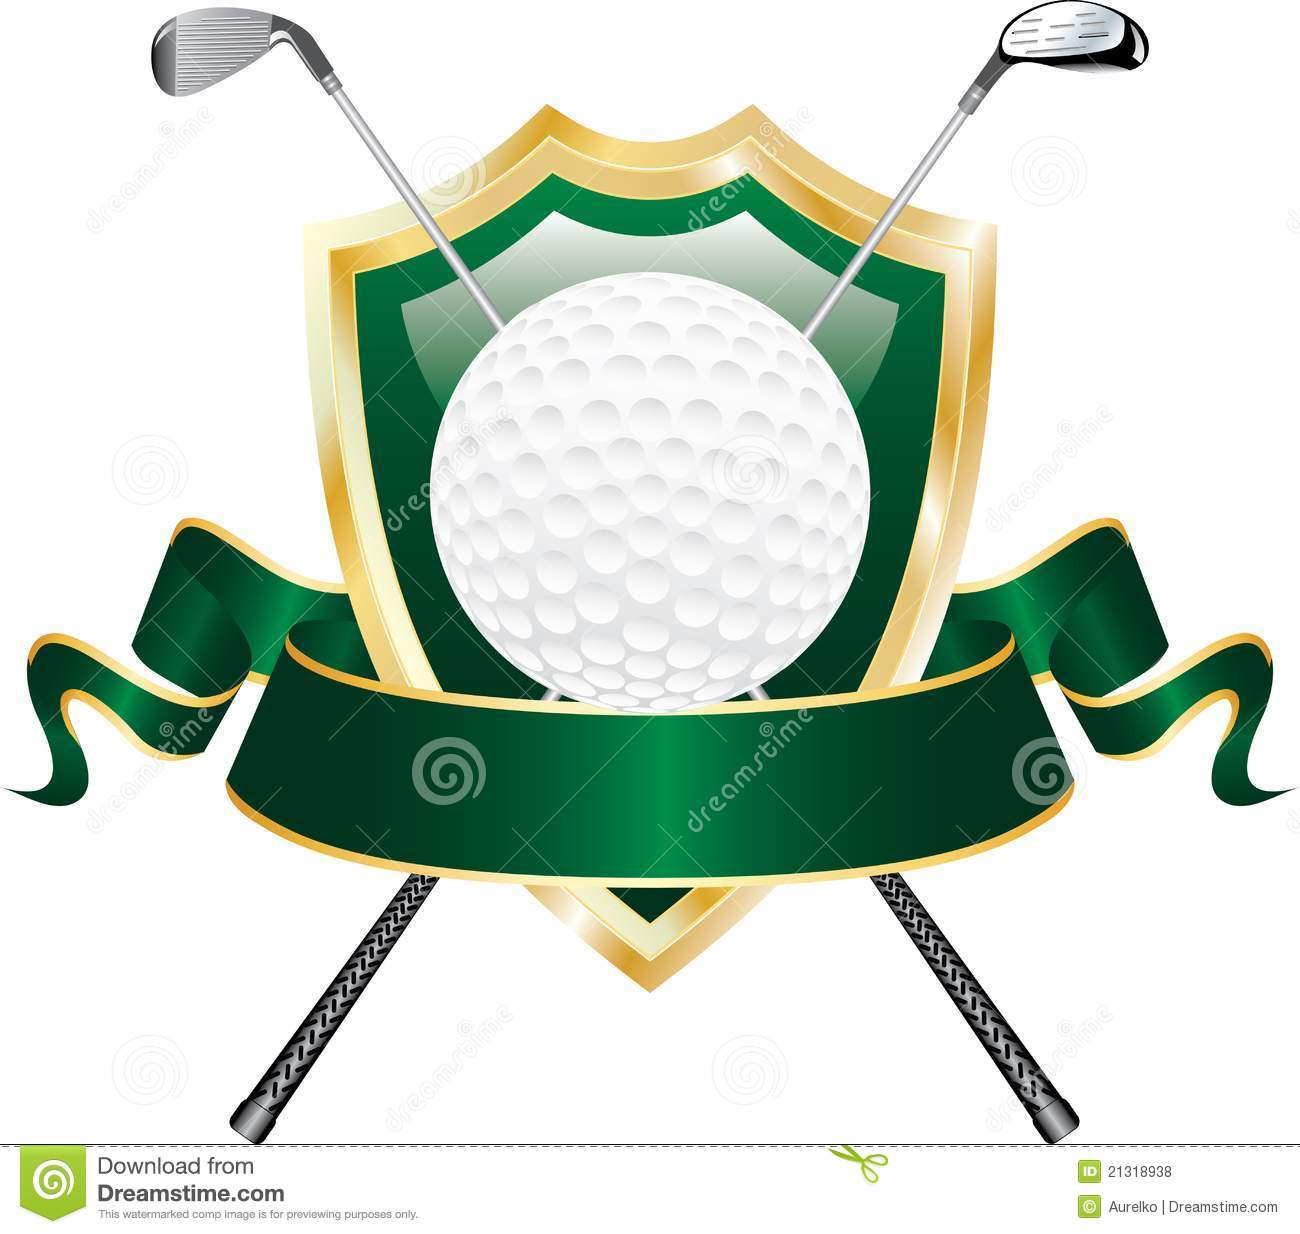 Free Clipart Golf | Free download best Free Clipart Golf ...